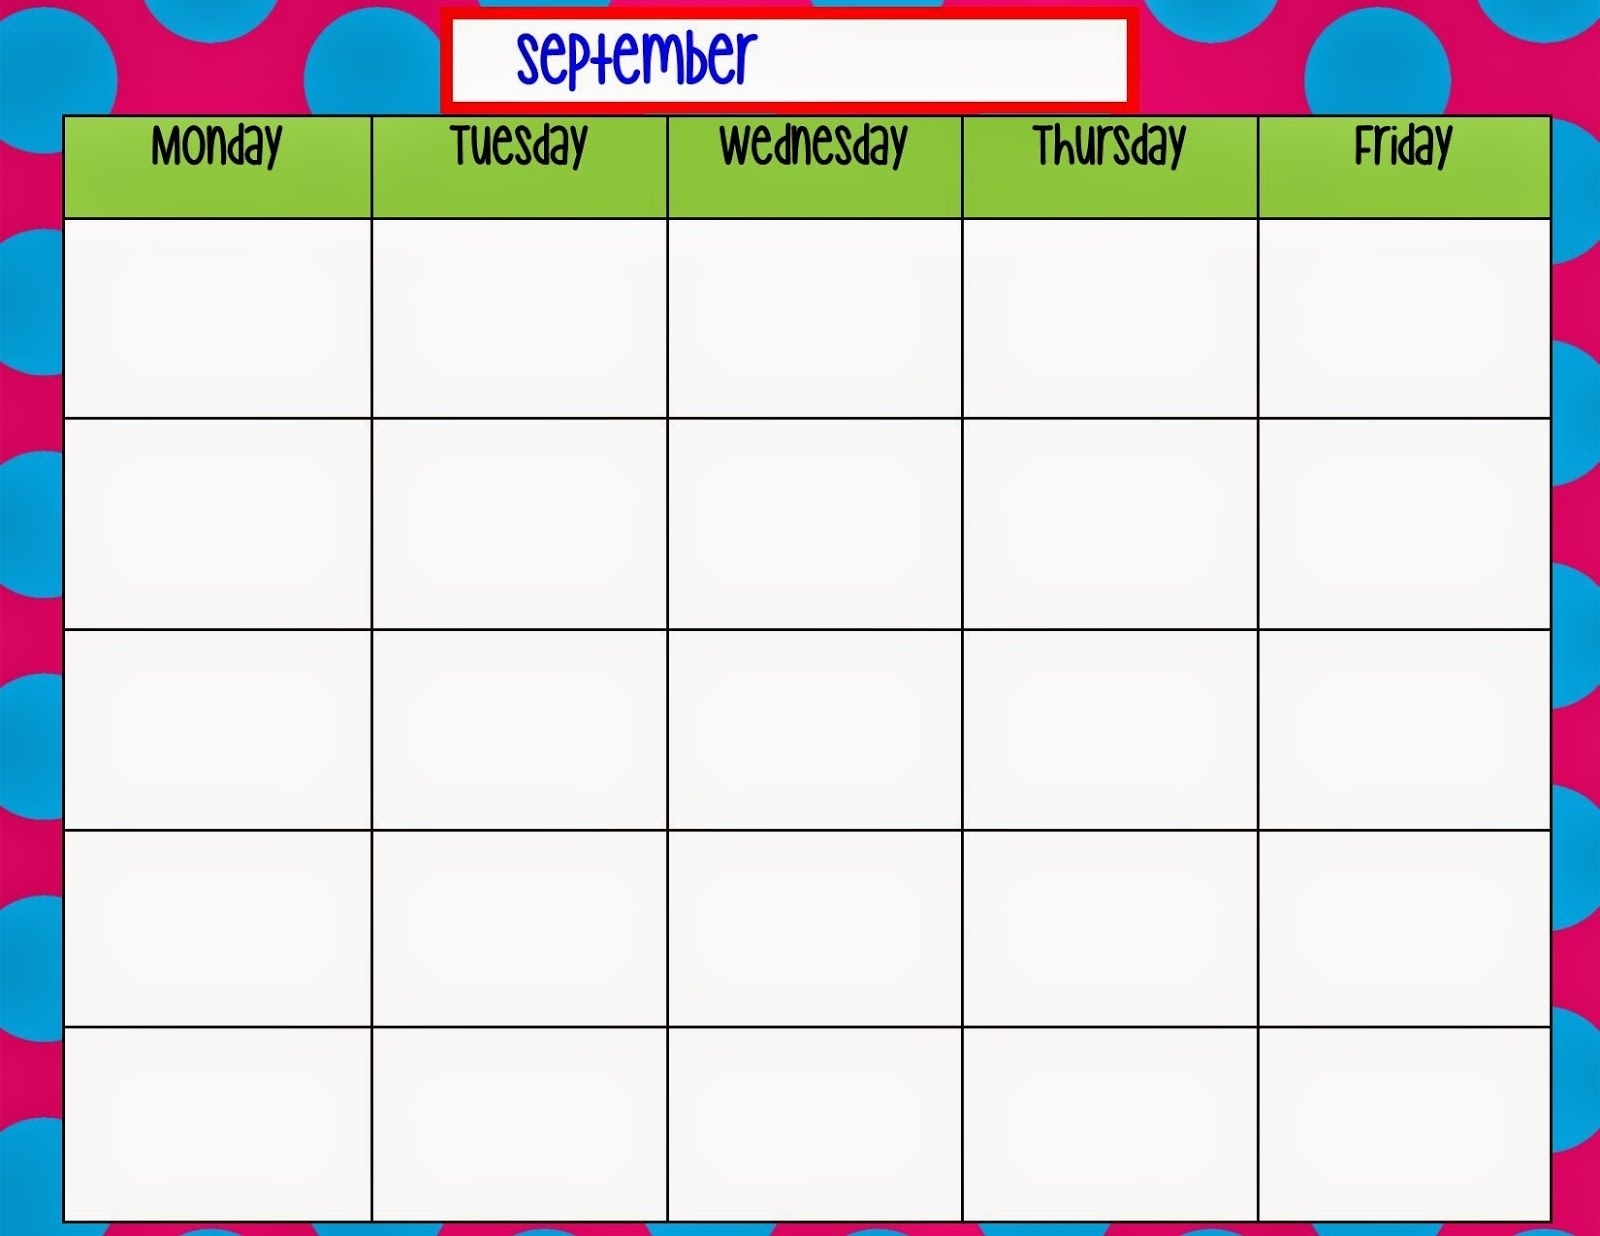 Catch Printable Monday Through Friday Schedule